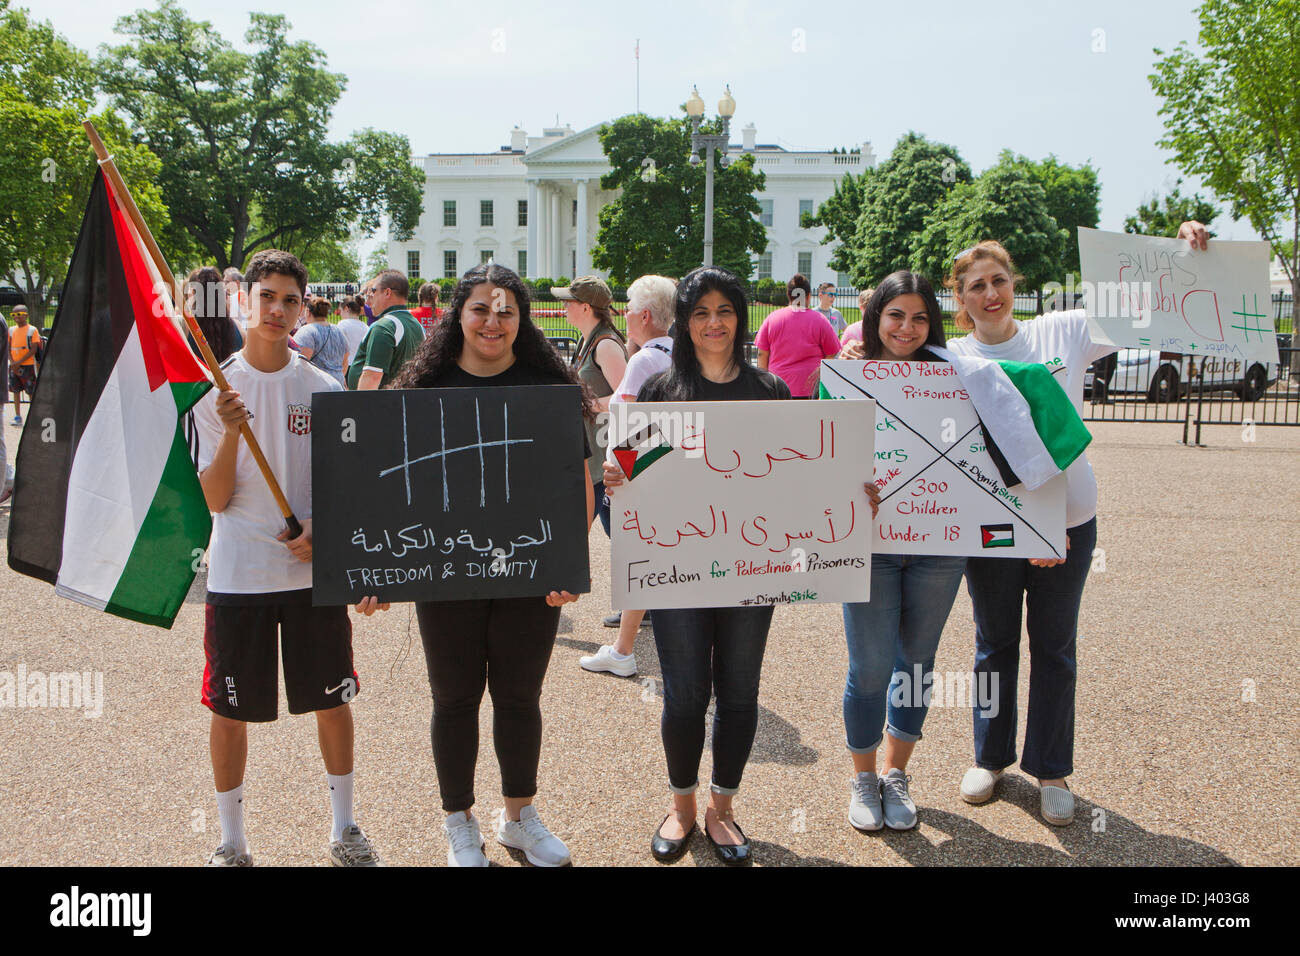 Palestinian-Americans hold 'Freedom and Dignity' signs in support of the Palestine hunger strikers - USA - Stock Image